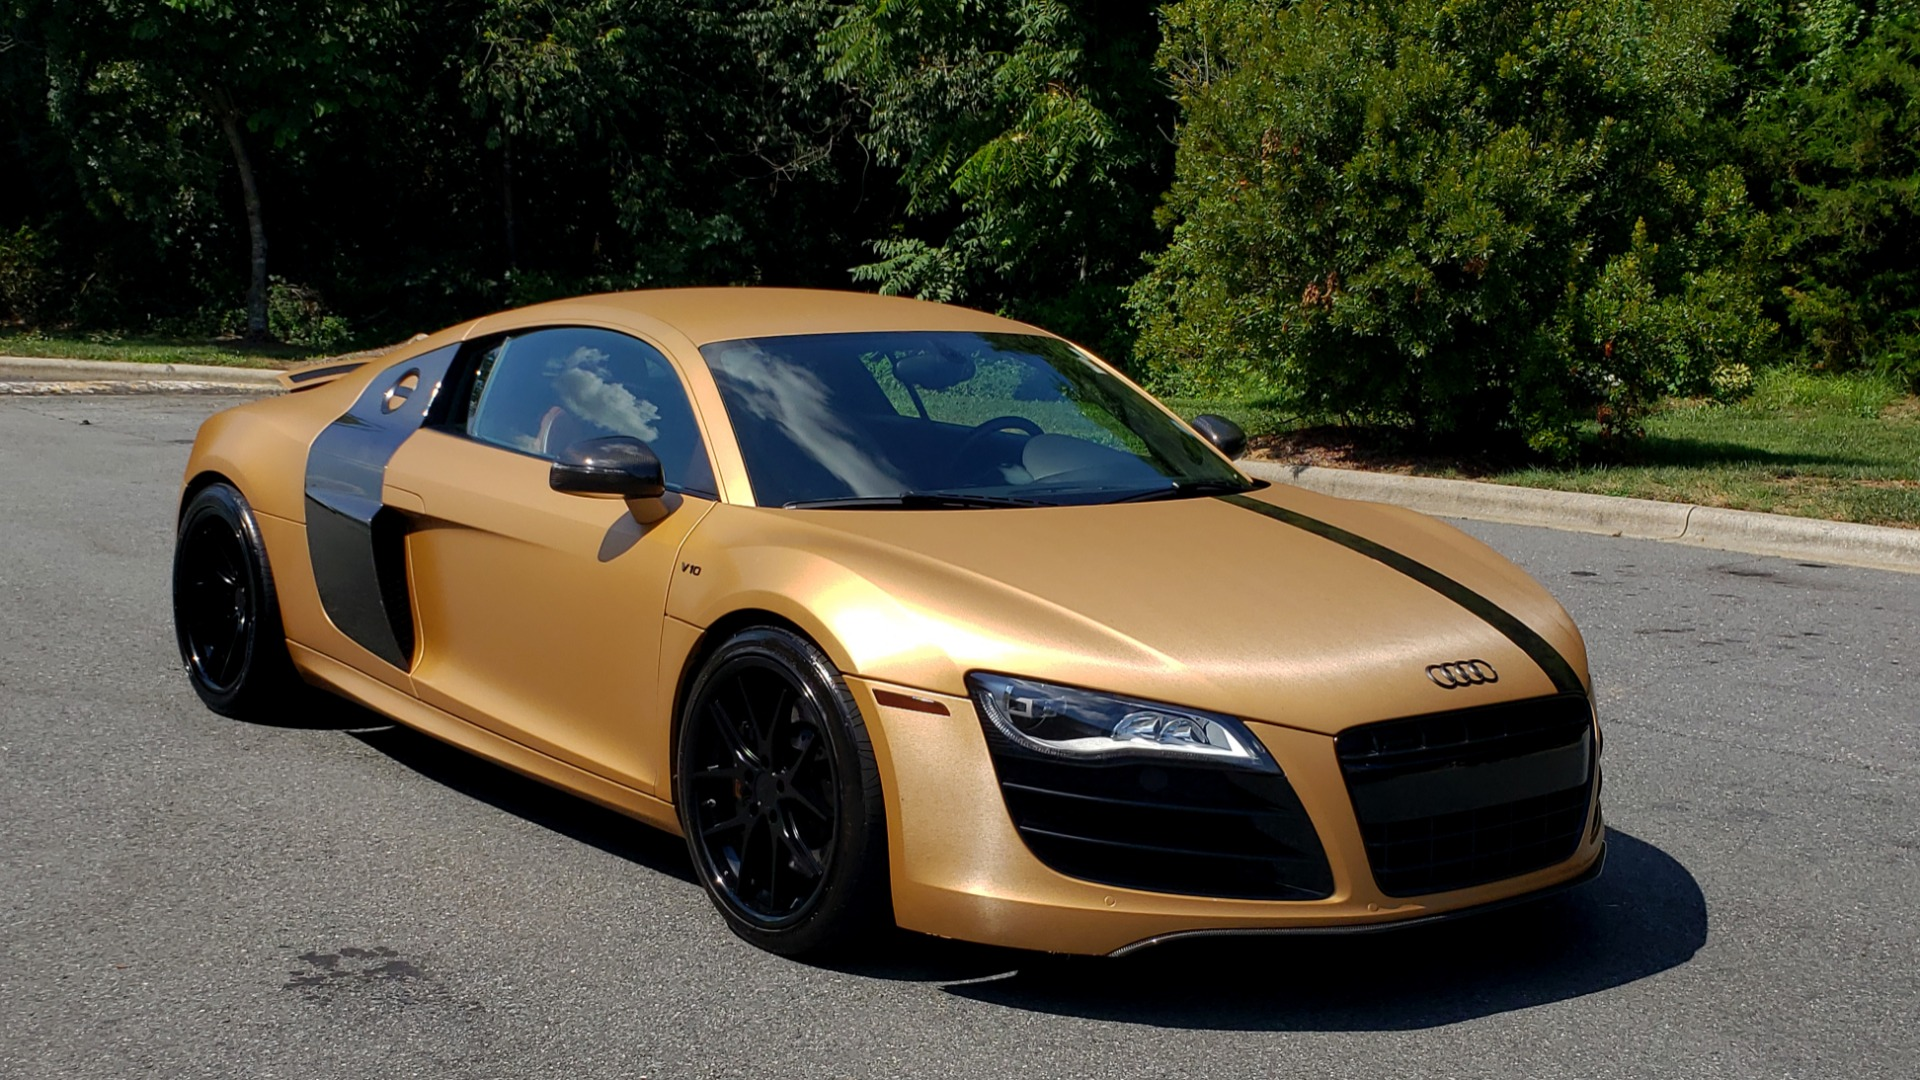 Used 2012 Audi R8 5.2L V10 / AWD / COUPE / NAV / 6-SPD AUTO / CUSTOM WRAP for sale Sold at Formula Imports in Charlotte NC 28227 10